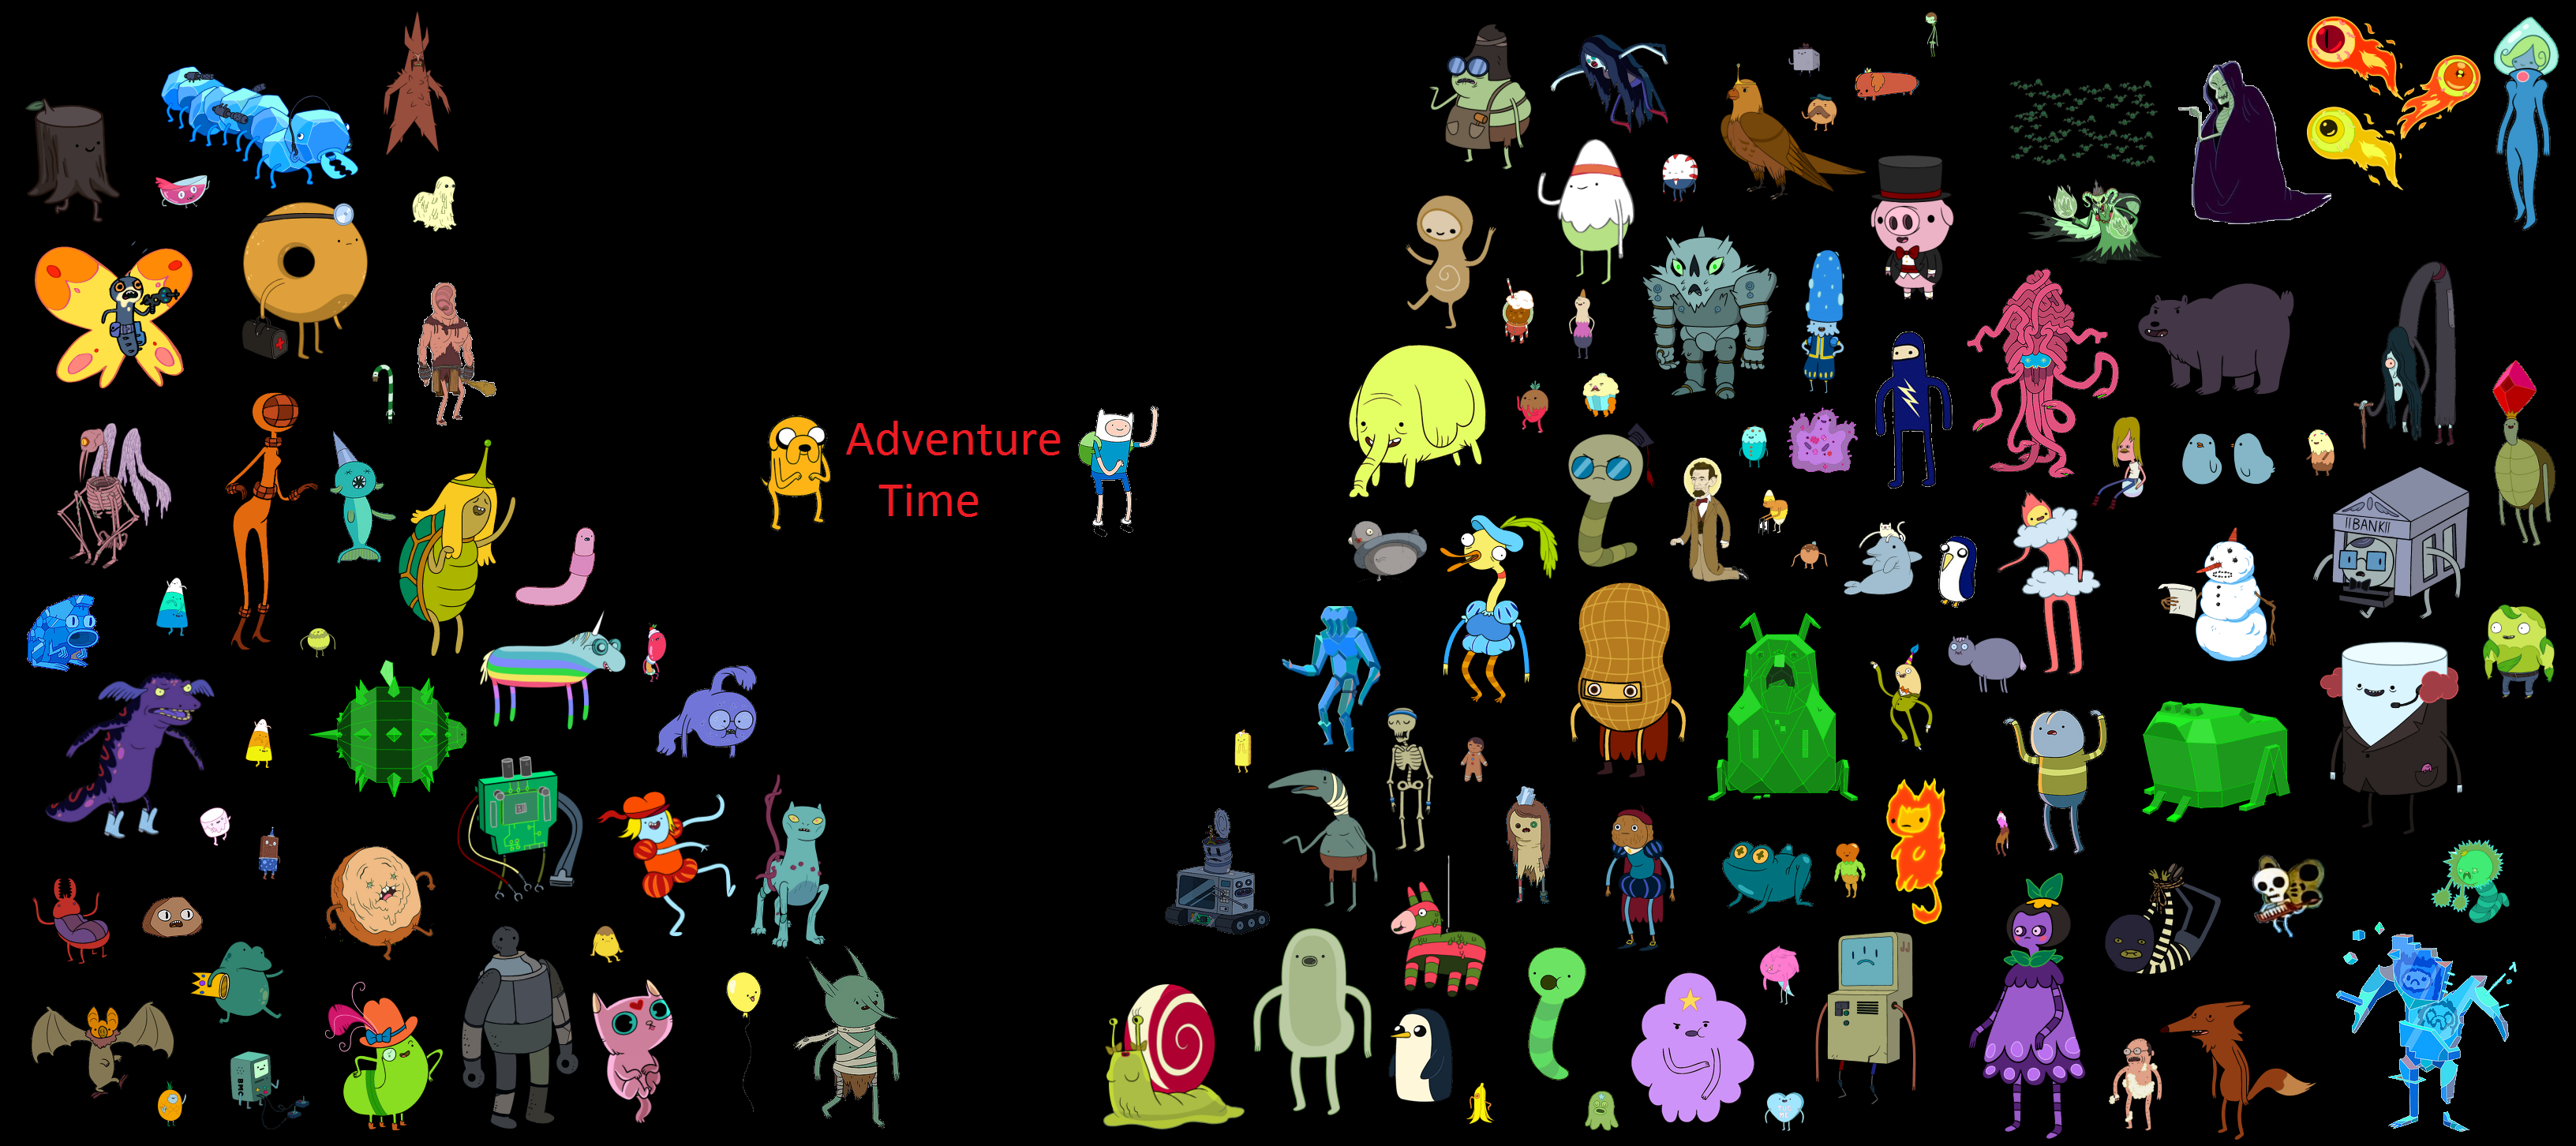 The Adventure Time With Finn And Jake Wiki File Adventure Time With Finn